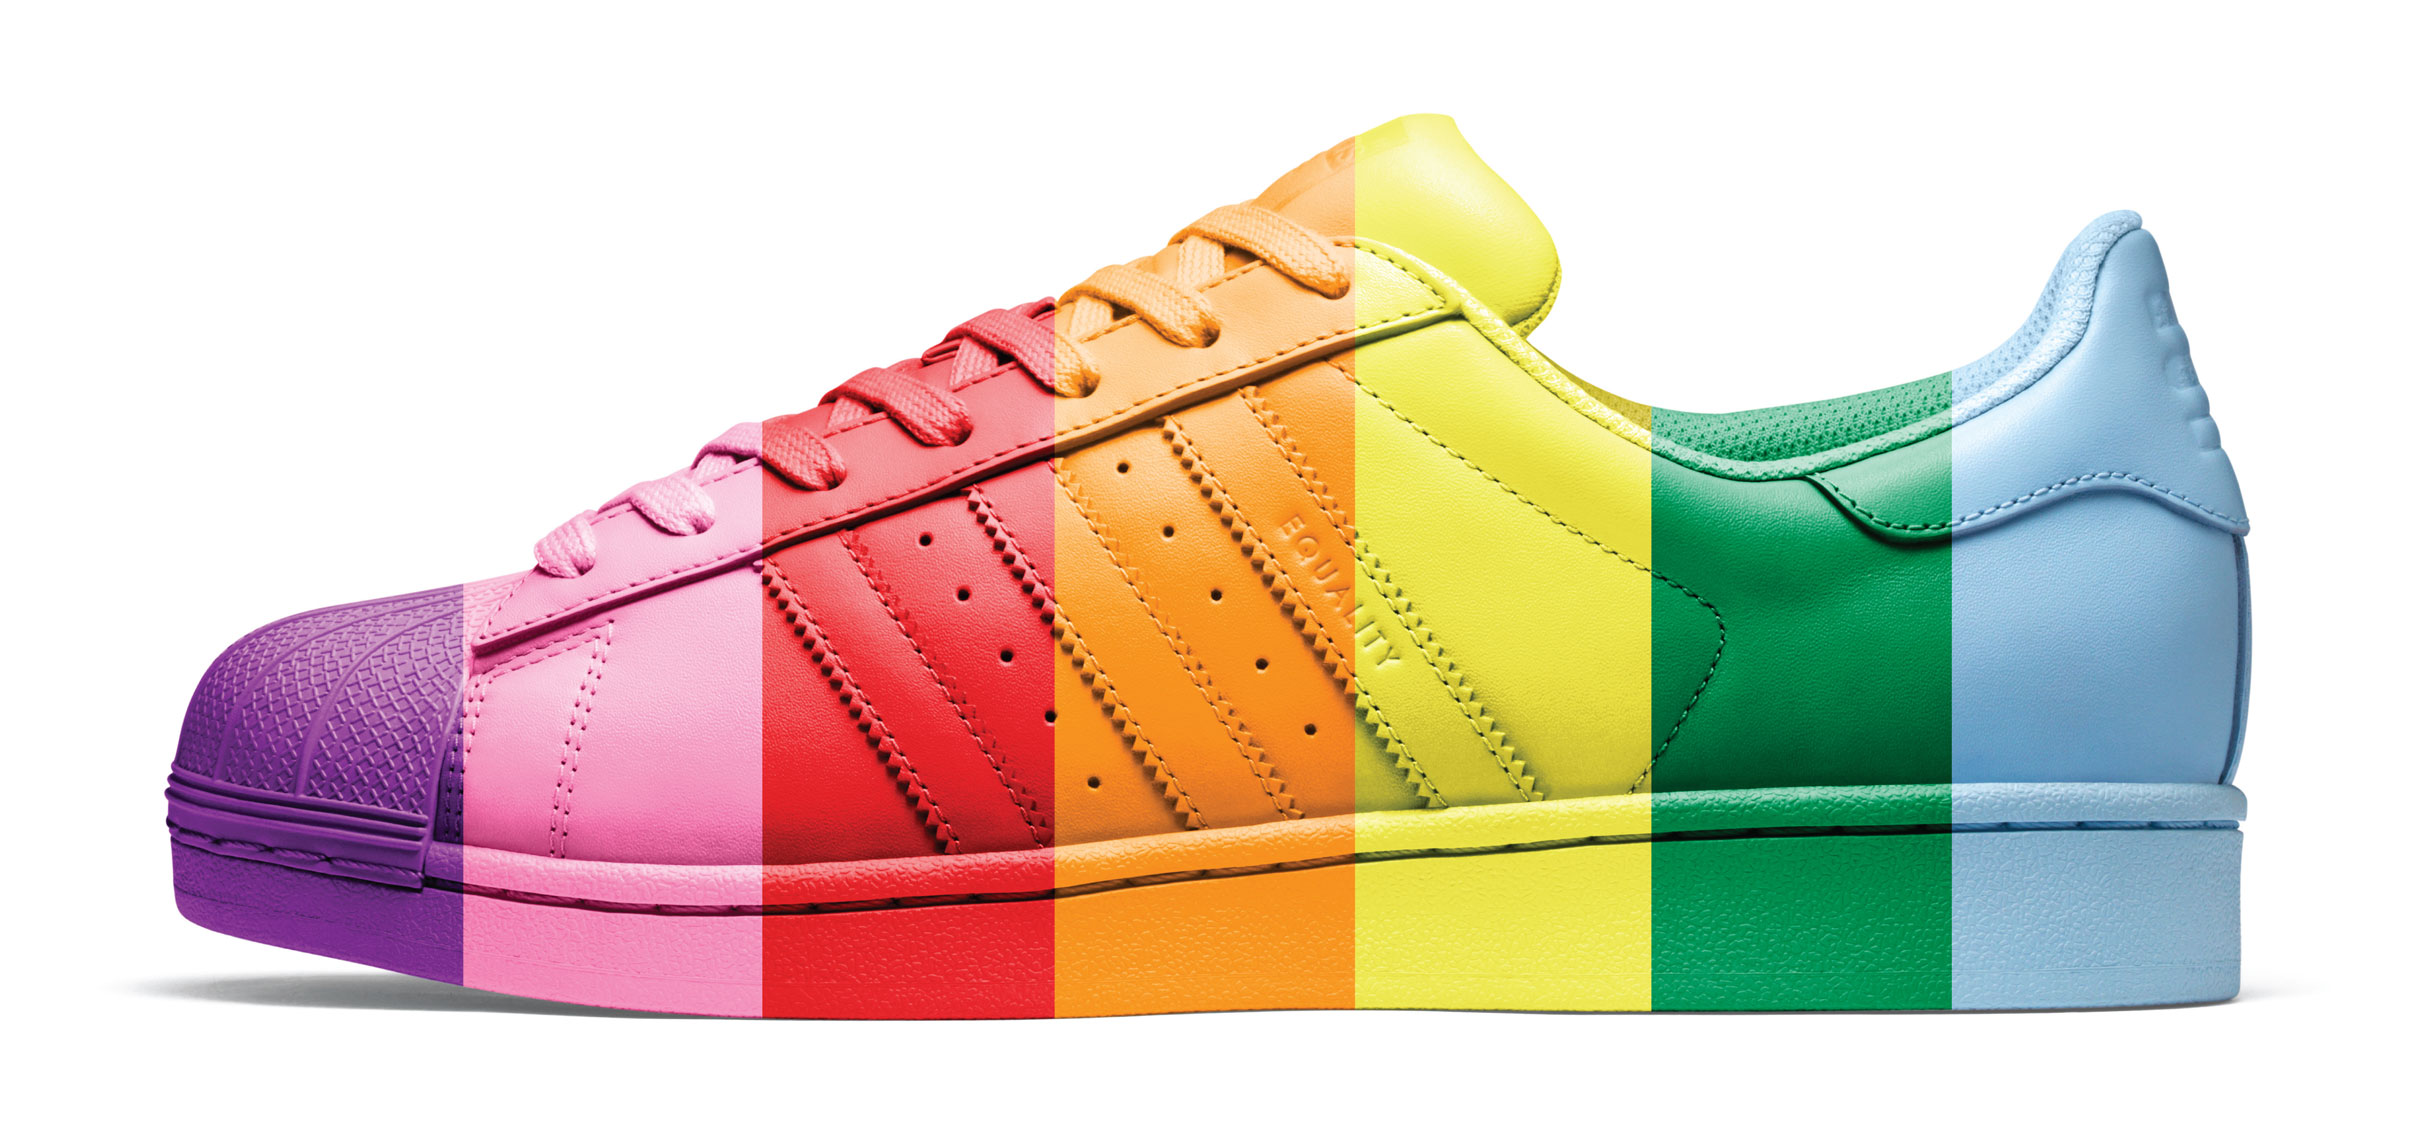 Rainbow_Shoe_Photo